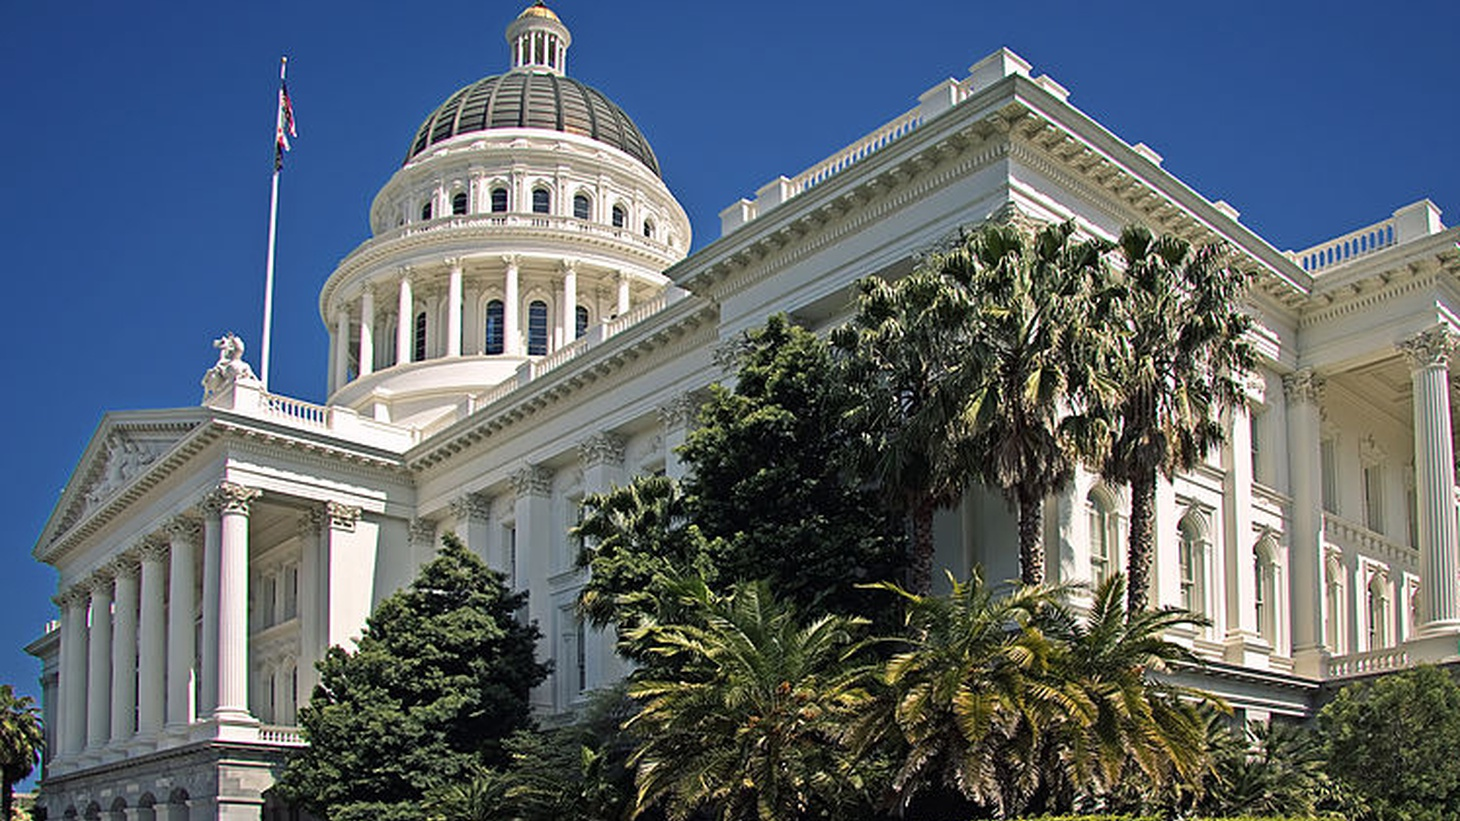 The state legislature is in recess now, but come the New Year they'll tackle a raft of big divisive issues, and face-off with Governor Jerry Brown in a new climate of shifting power dynamics. We get a preview of the year ahead and take stock of 2015.